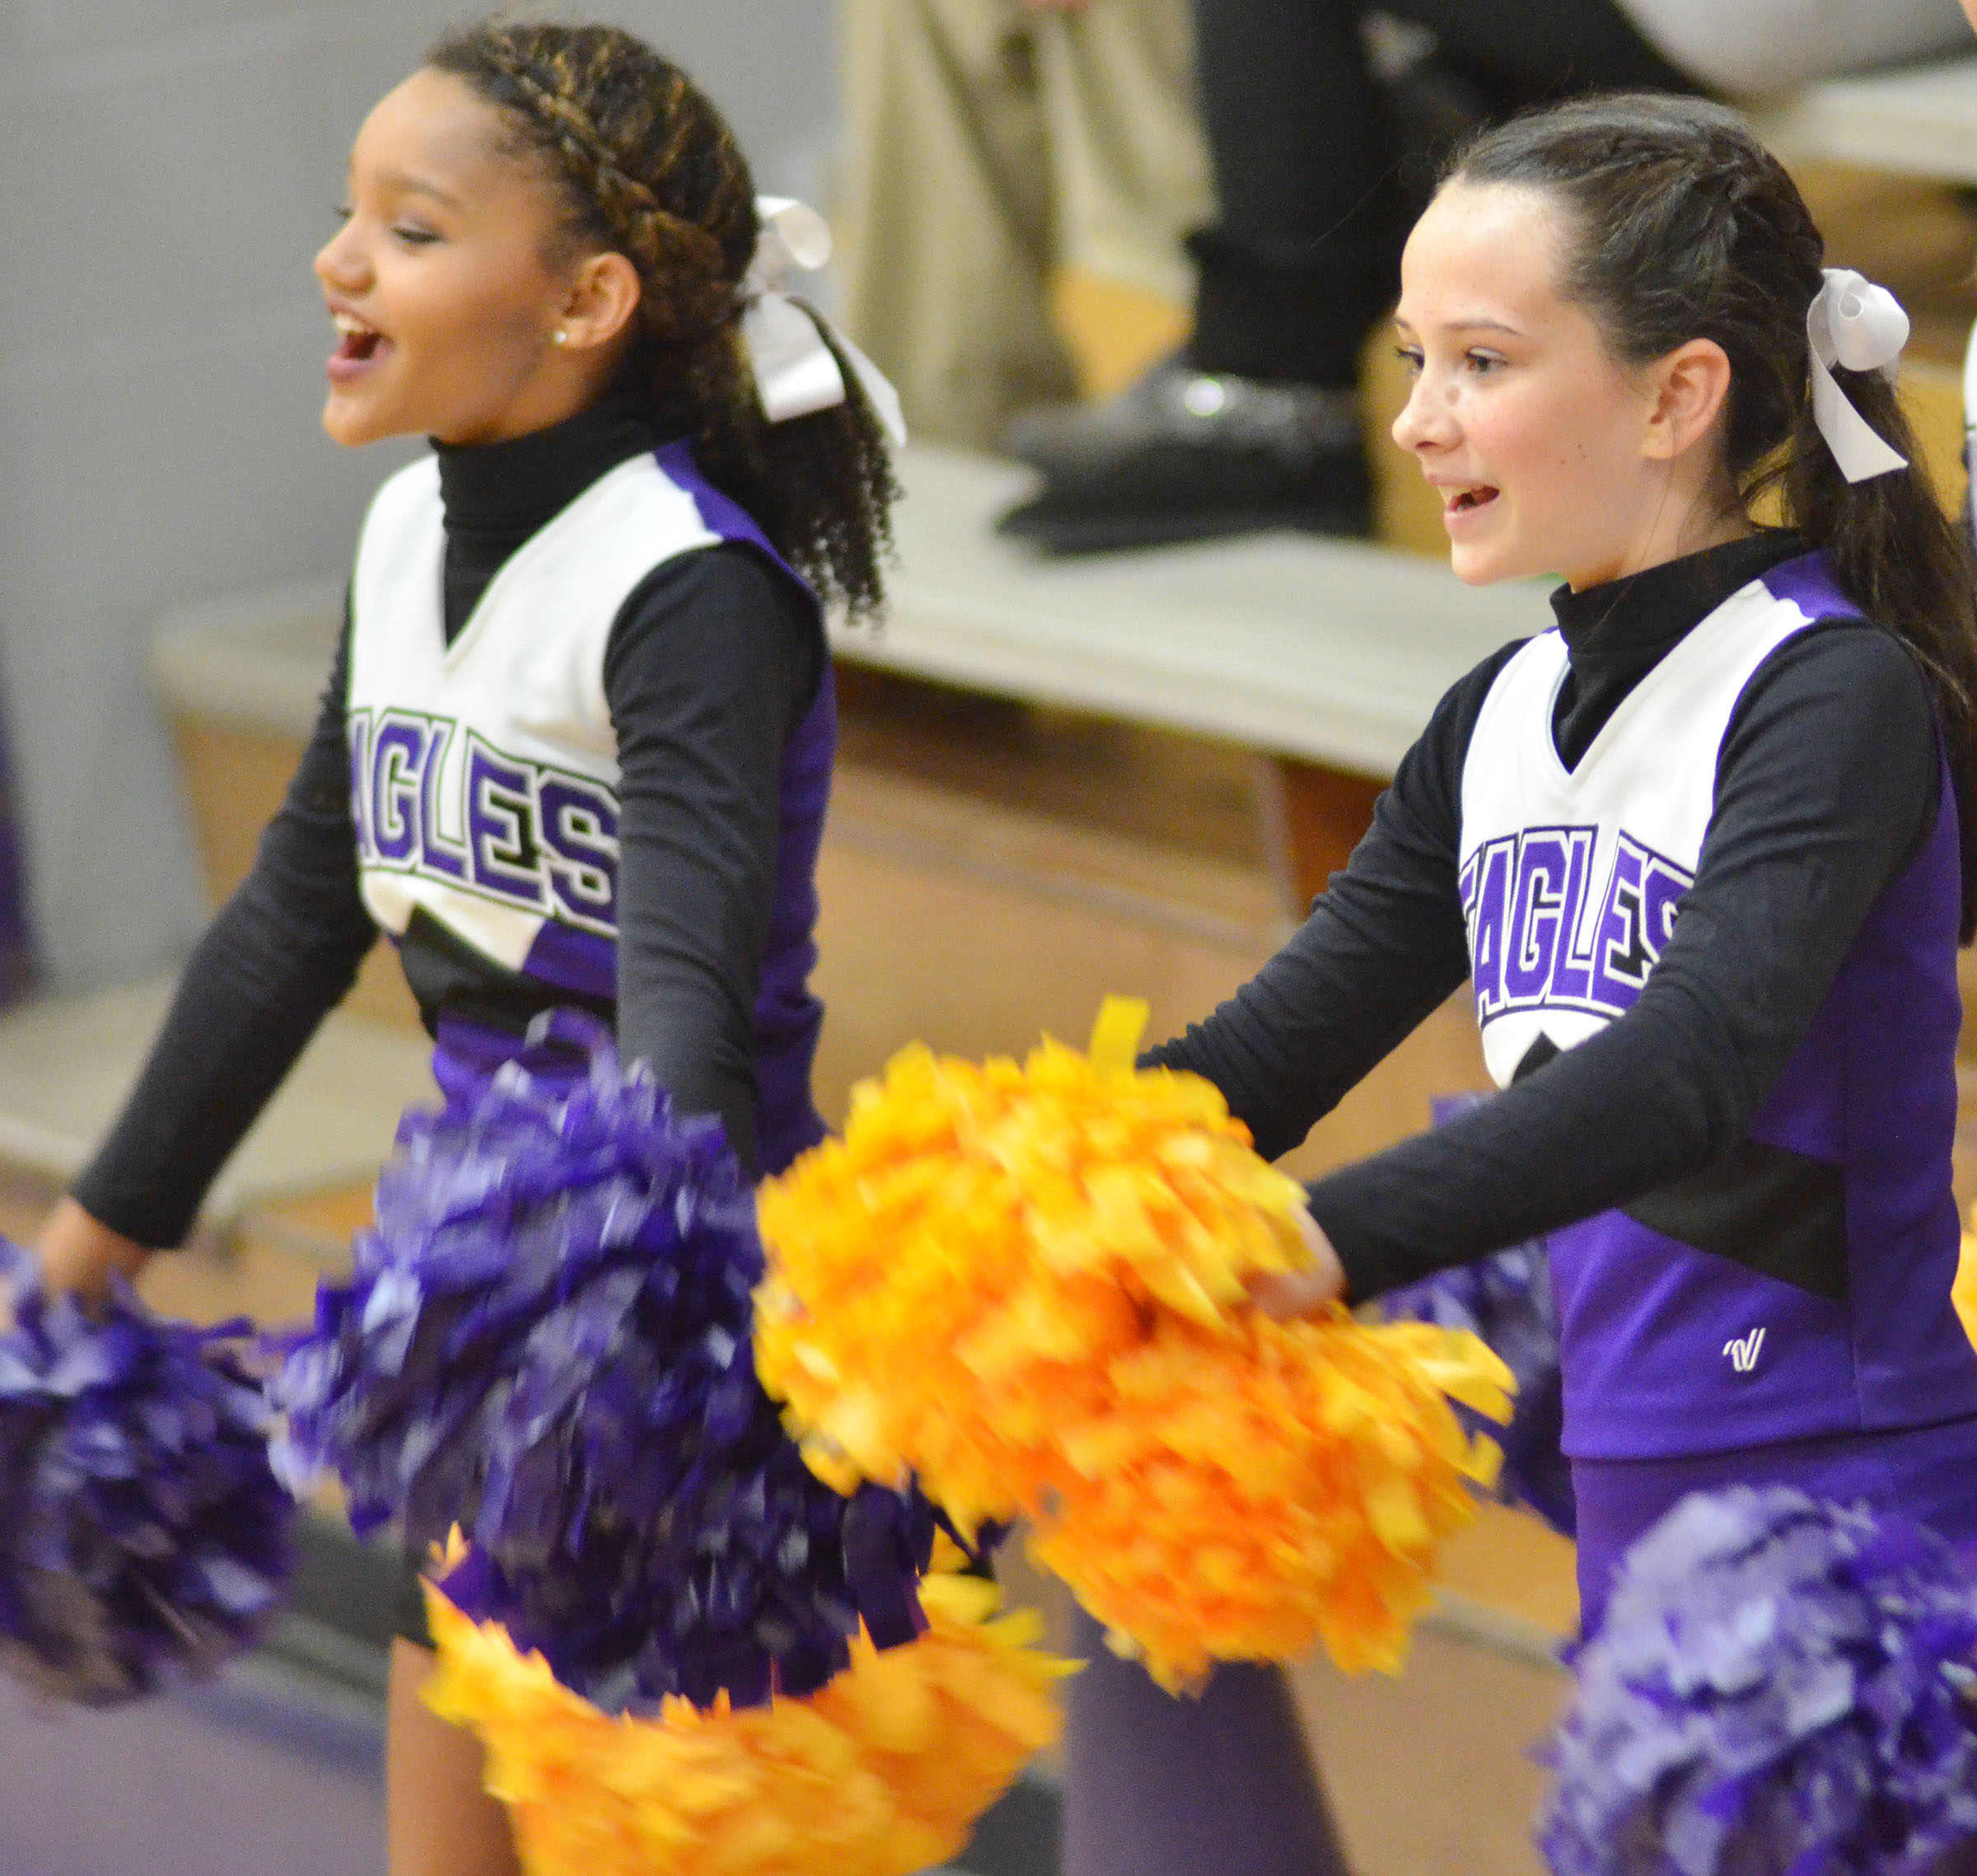 CMS seventh-graders Alexis Thomas, at left, and Sarah Adkins cheer for the Eagles.